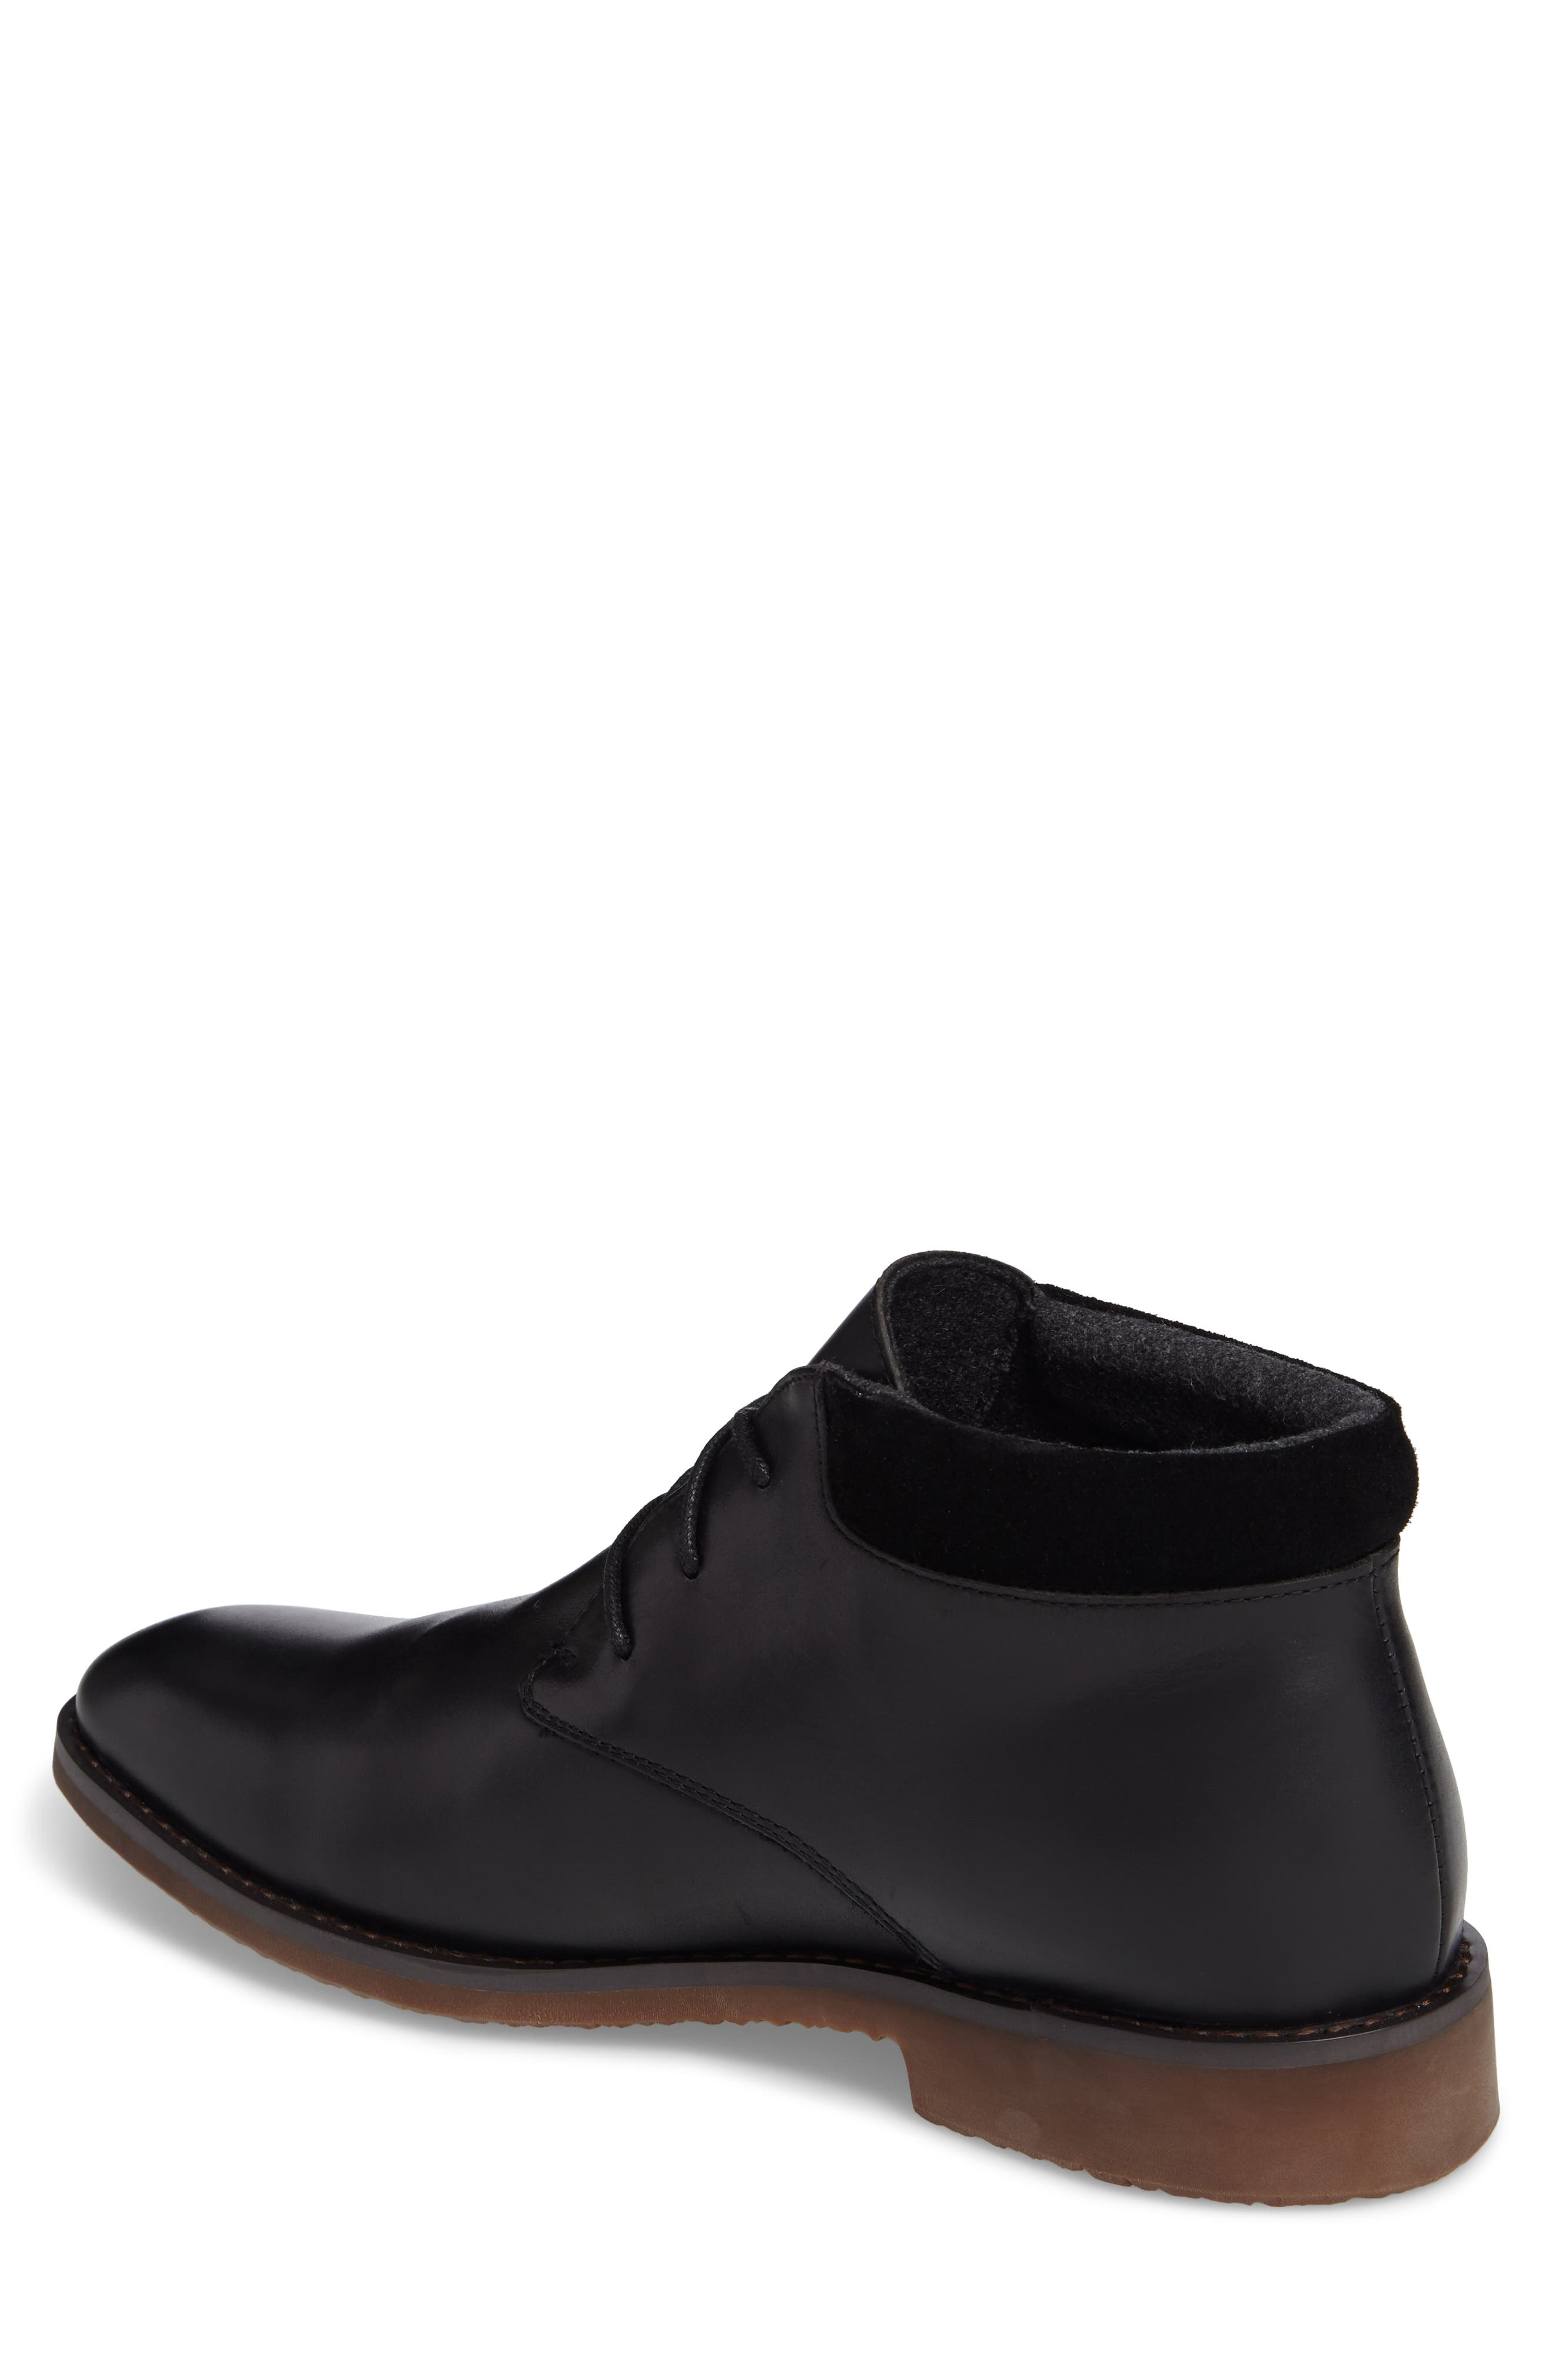 Alternate Image 2  - English Laundry Talbot Chukka Boot (Men)